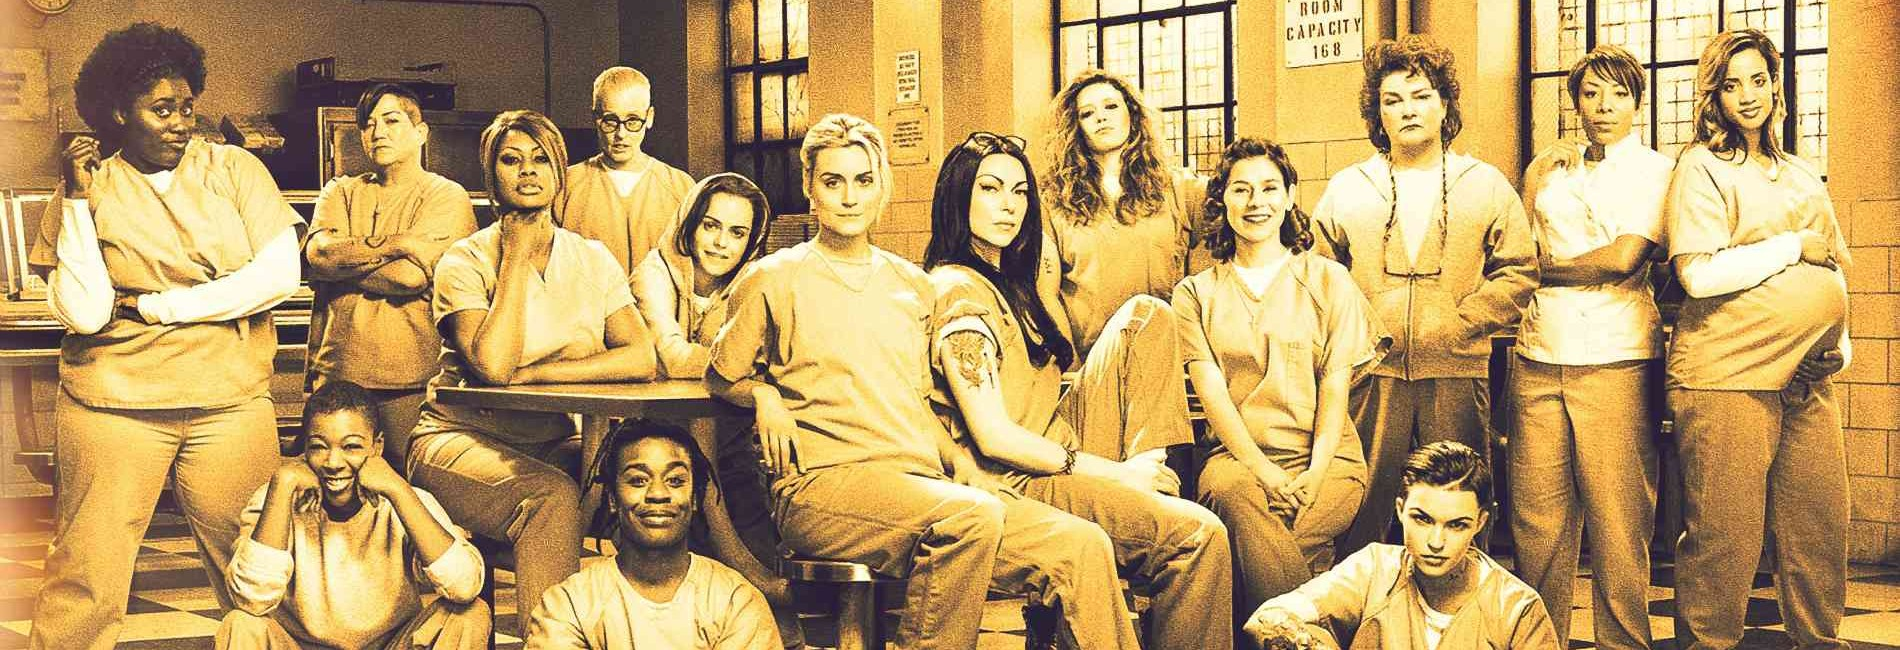 'Orange Is the New Black' Cast Photo